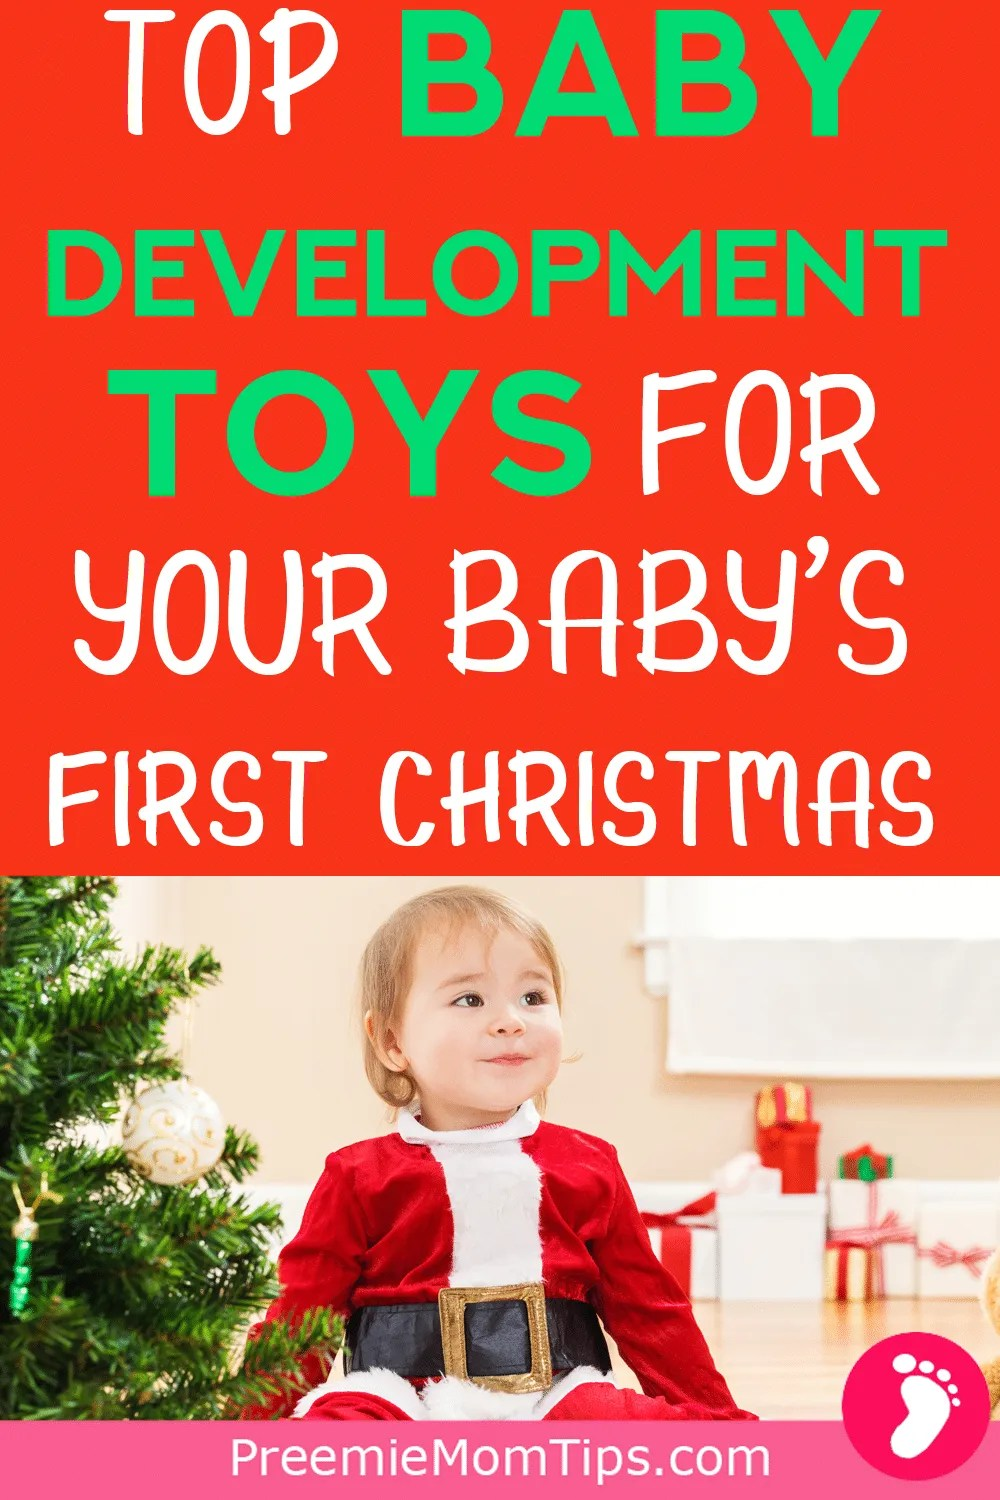 Check out these Holiday gift ideas for your baby's frist Christmas.